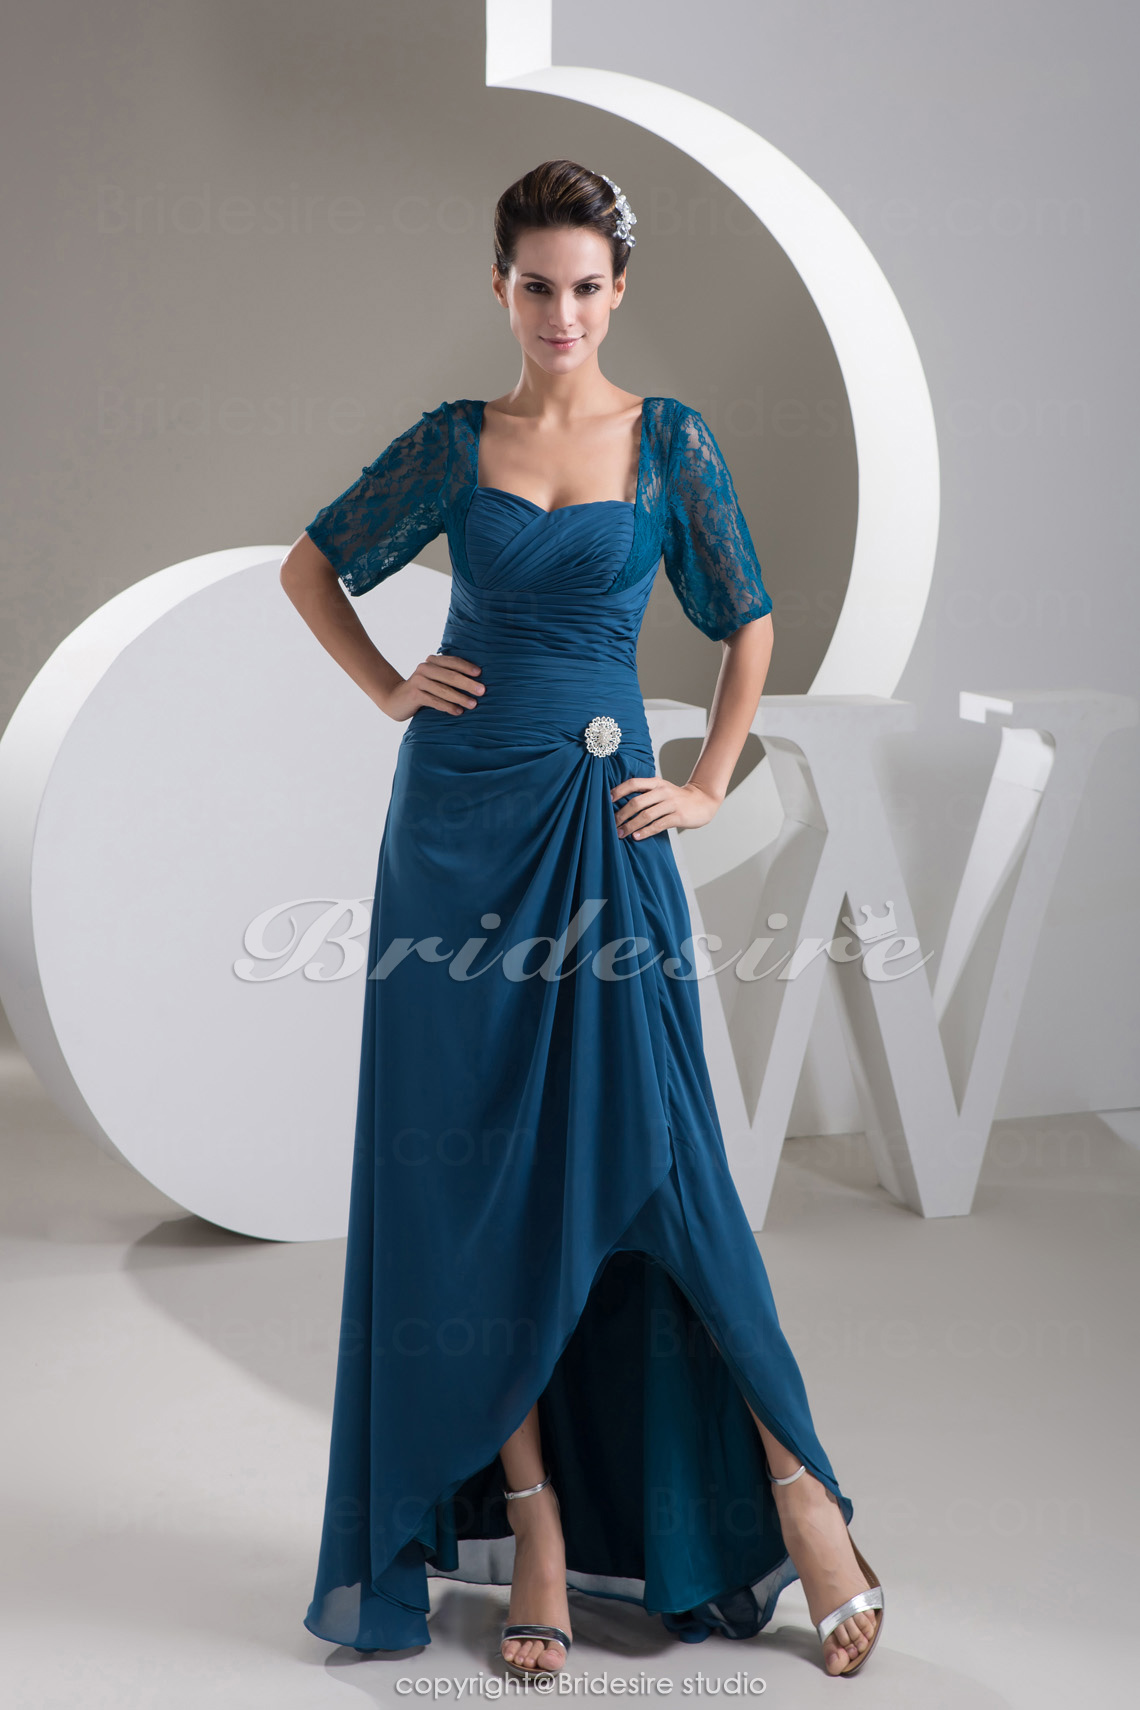 Sheath/Column Sweetheart Floor-length 3/4 Length Sleeve Chiffon